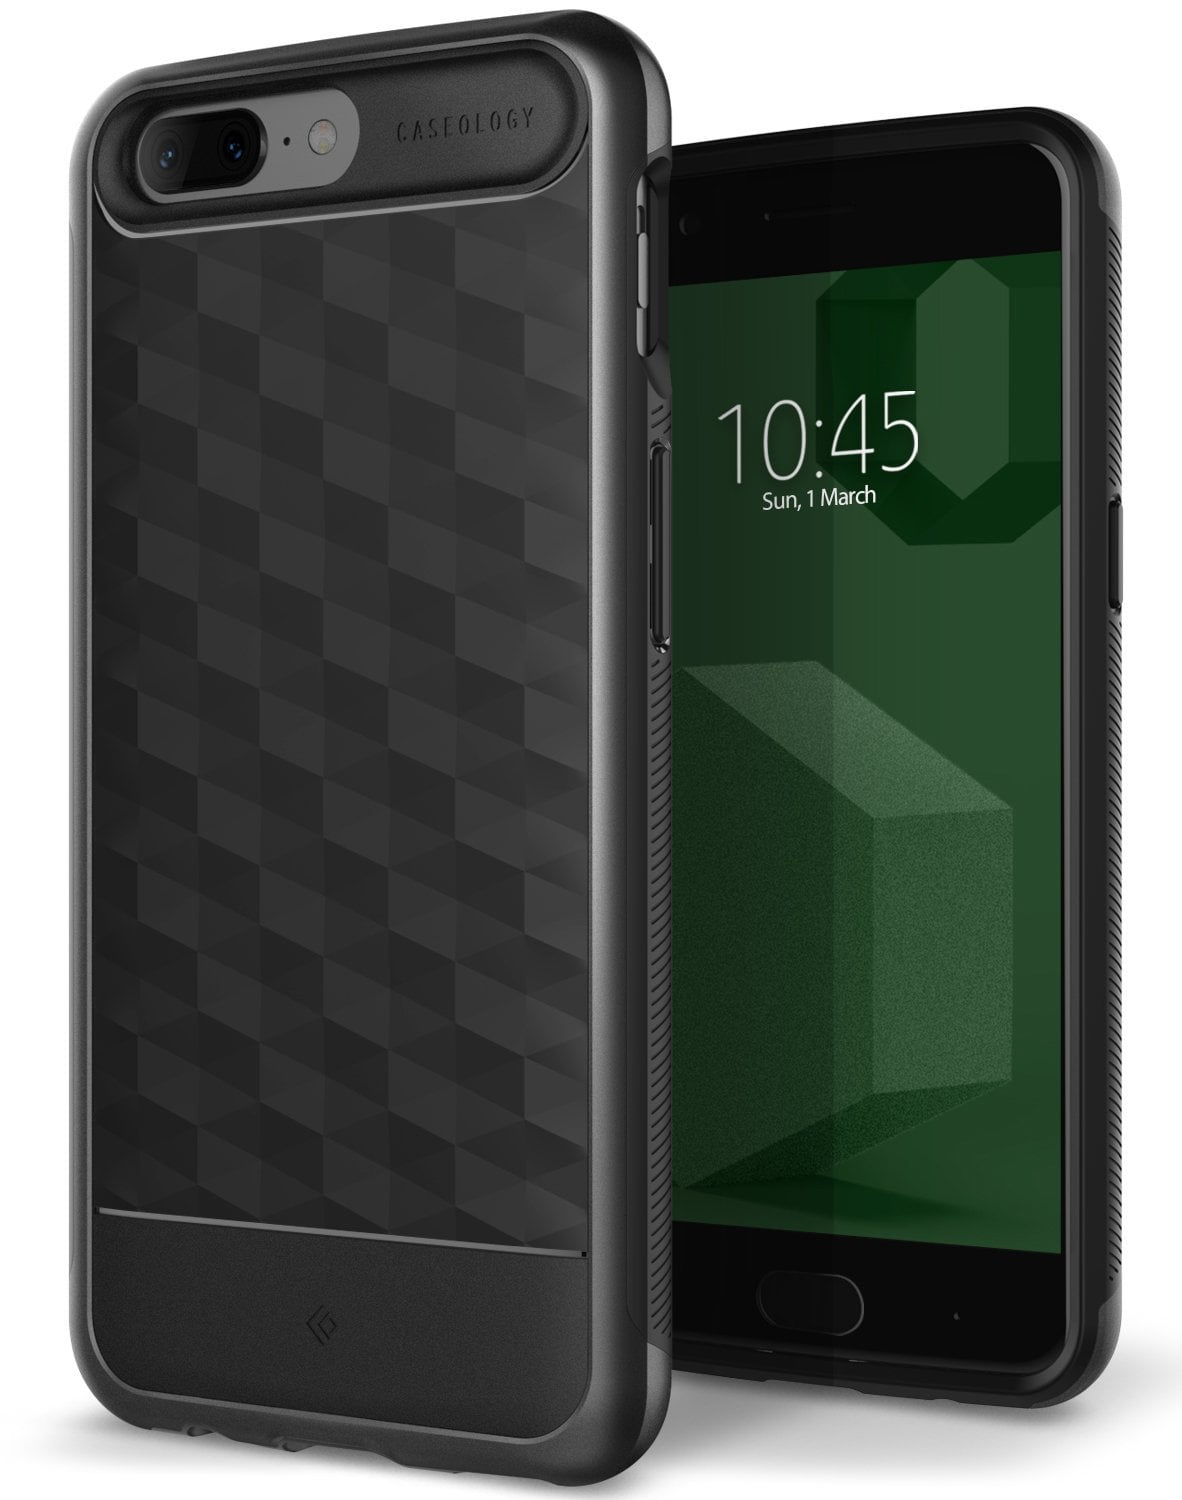 Caseology Galaxy Oneplus 5 Case Parallax Series - Black